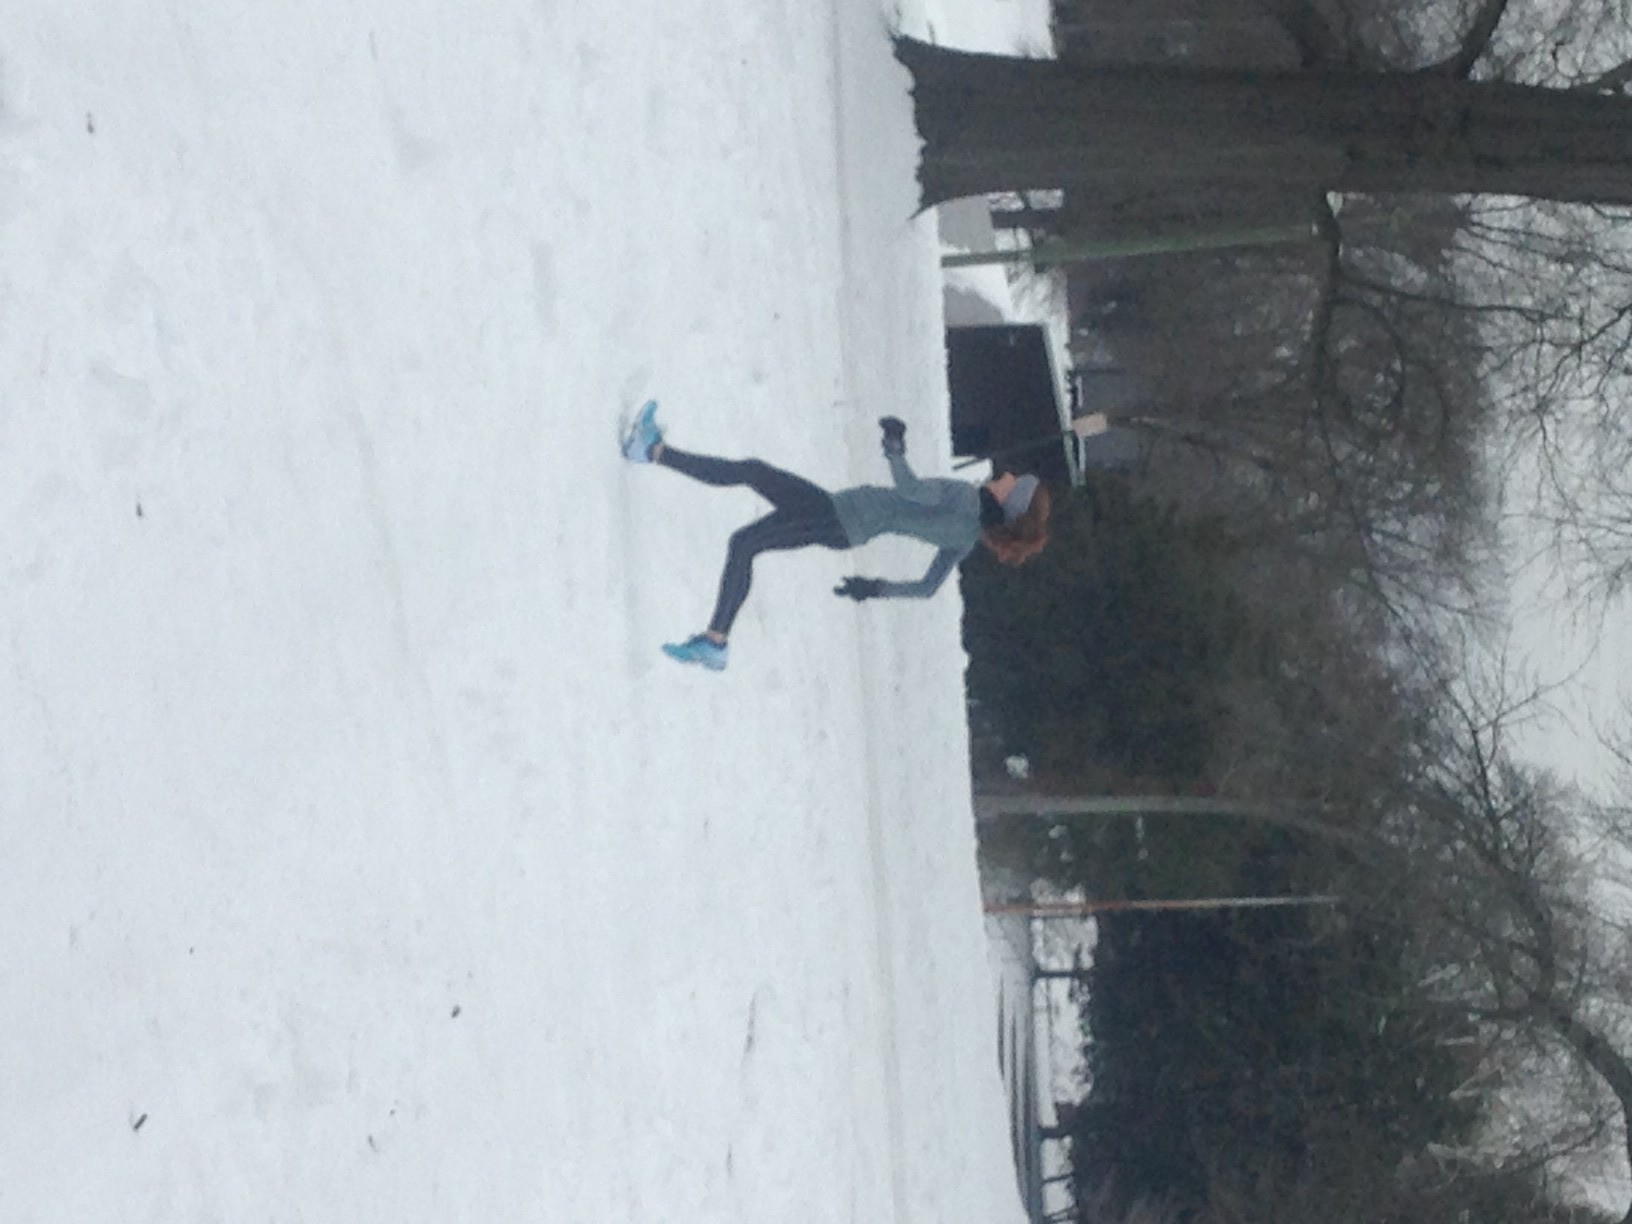 Running in the snow to cap off my 20-miler